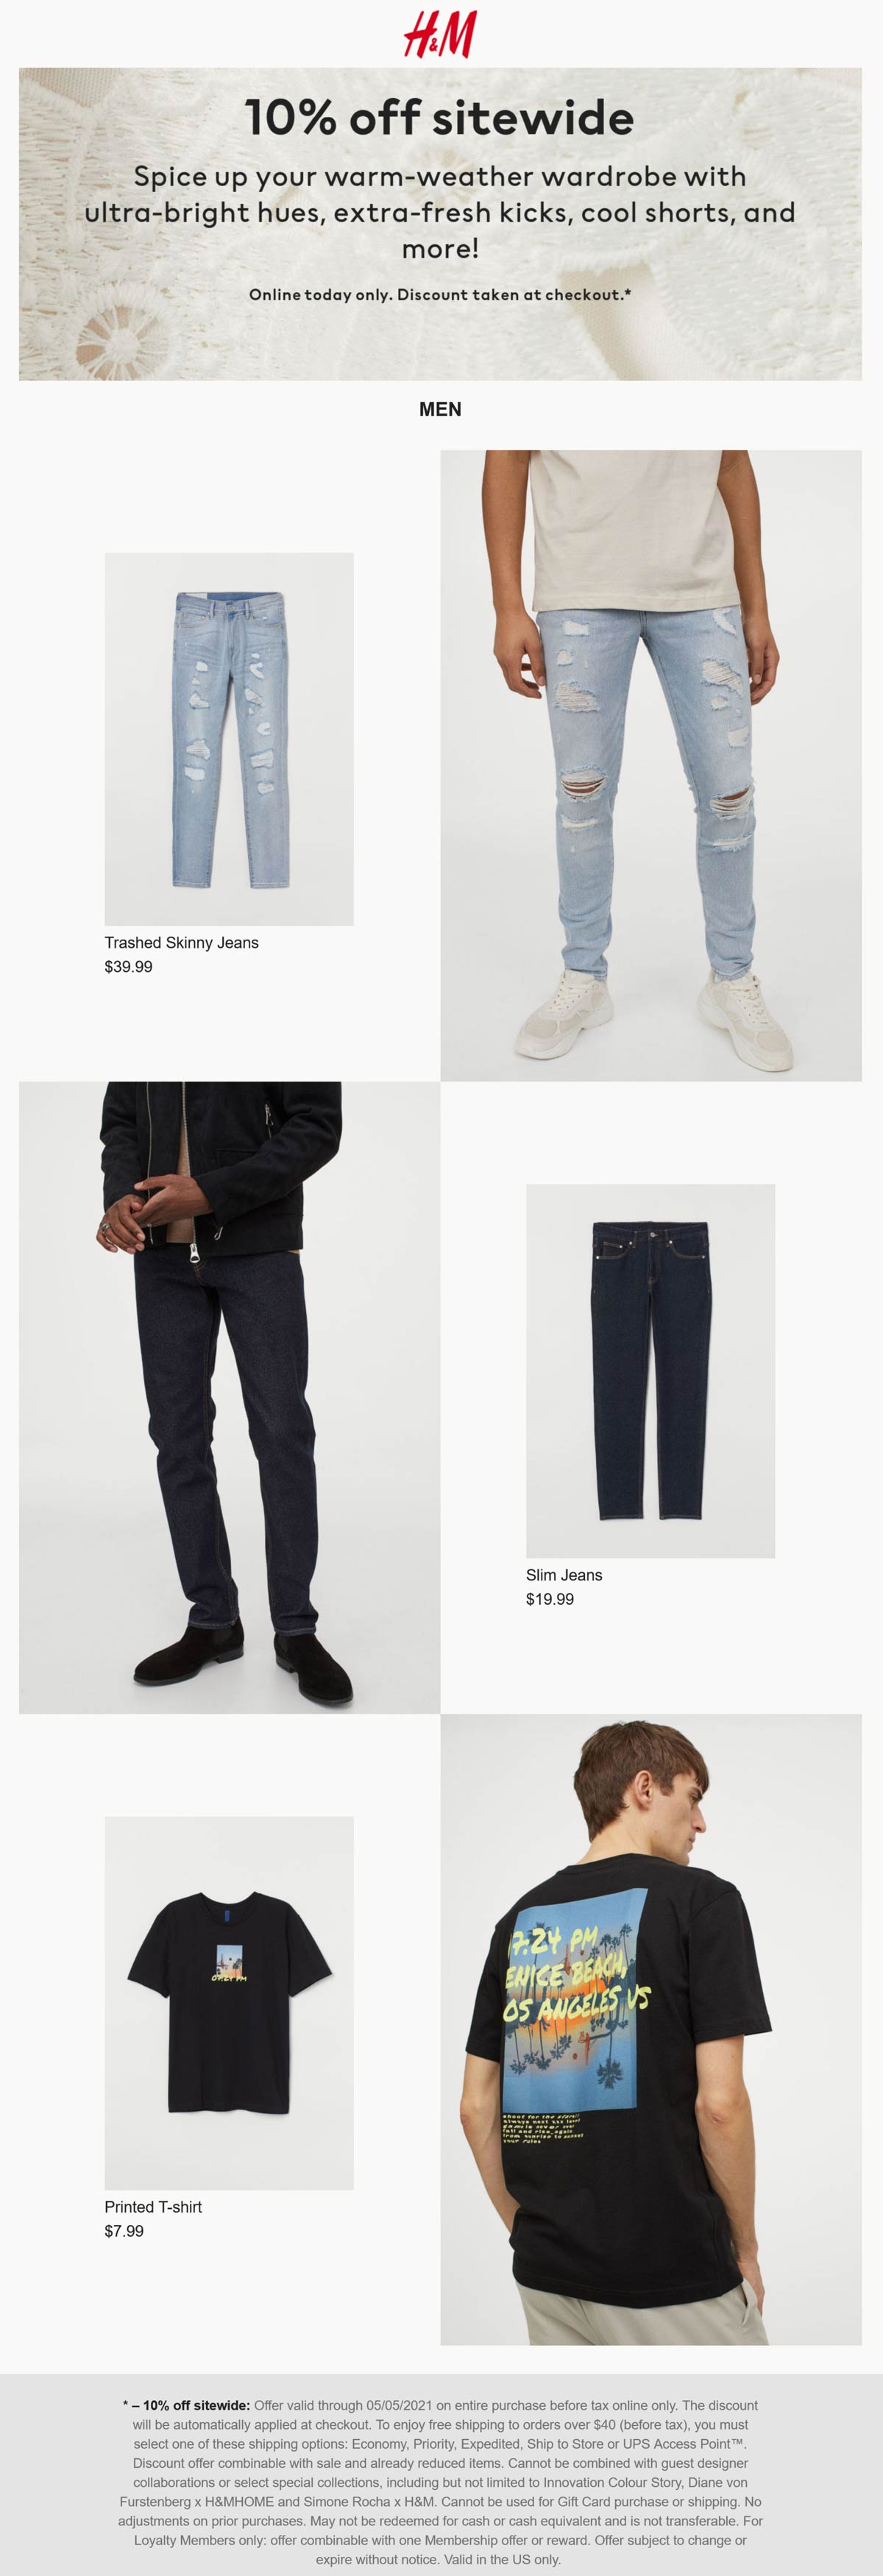 H&M coupons & promo code for [June 2021]